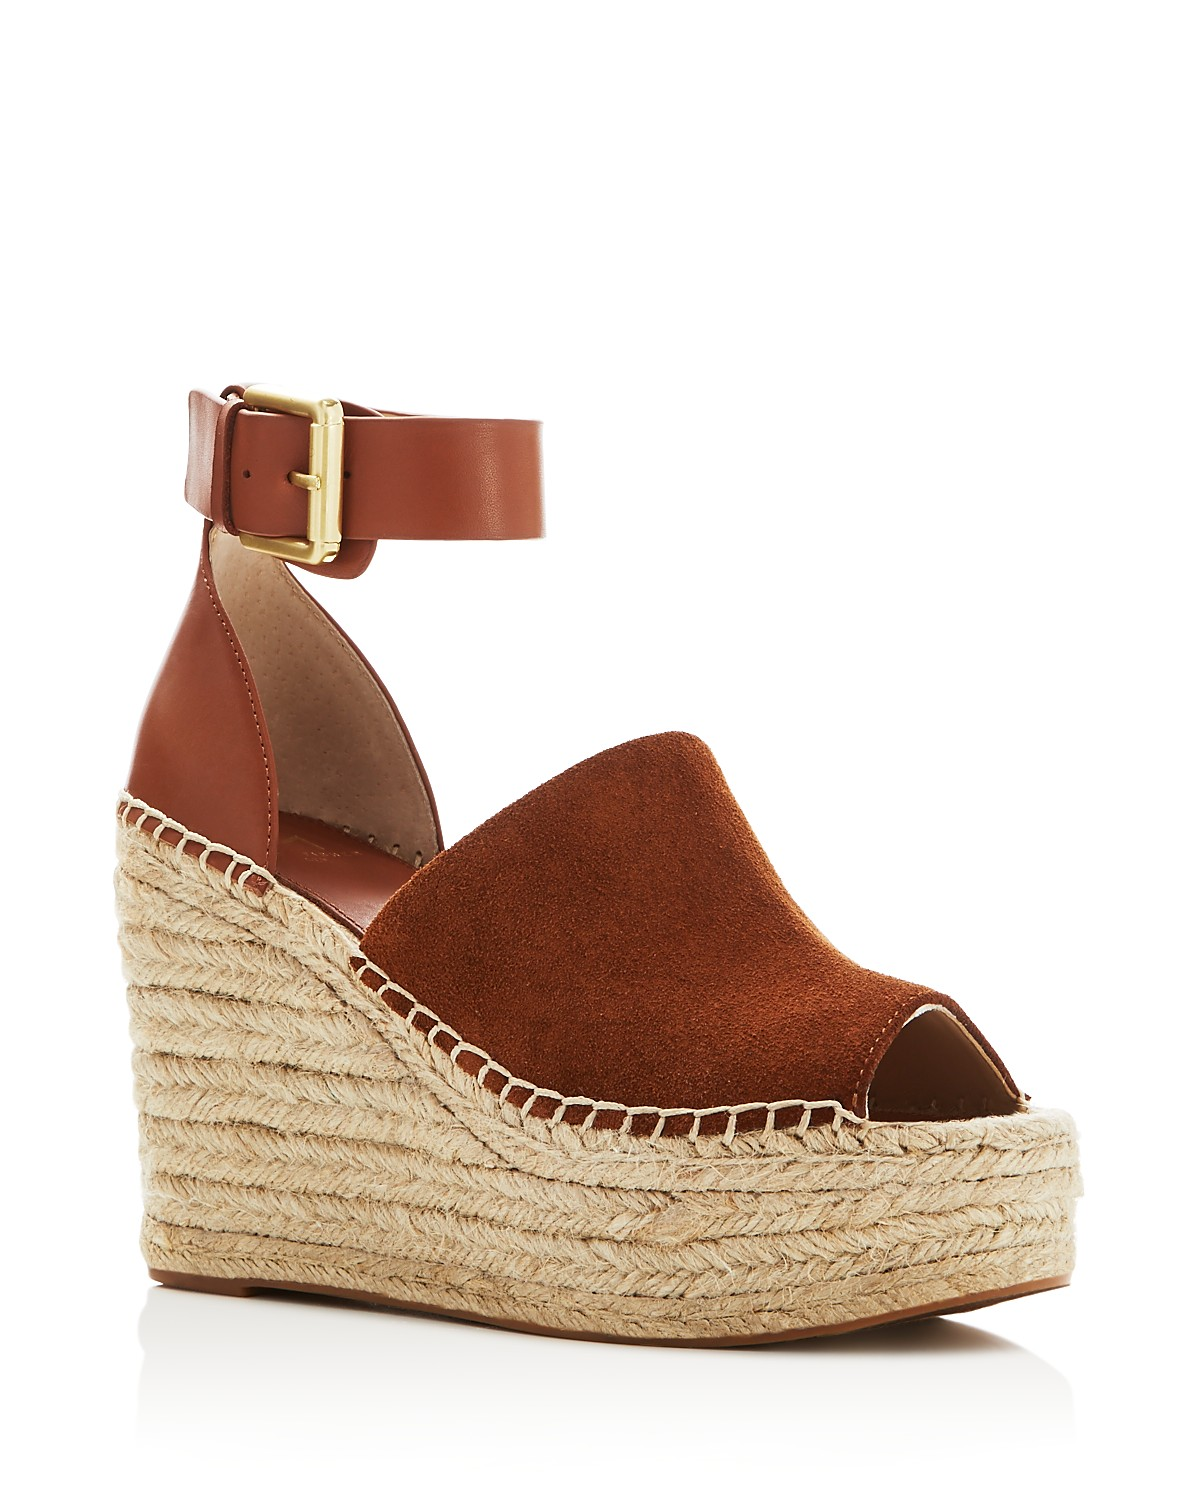 MARC FISHER Women's Adalyn Ankle Strap Espadrille Platform Wedge Sandals jlkrh7lD9